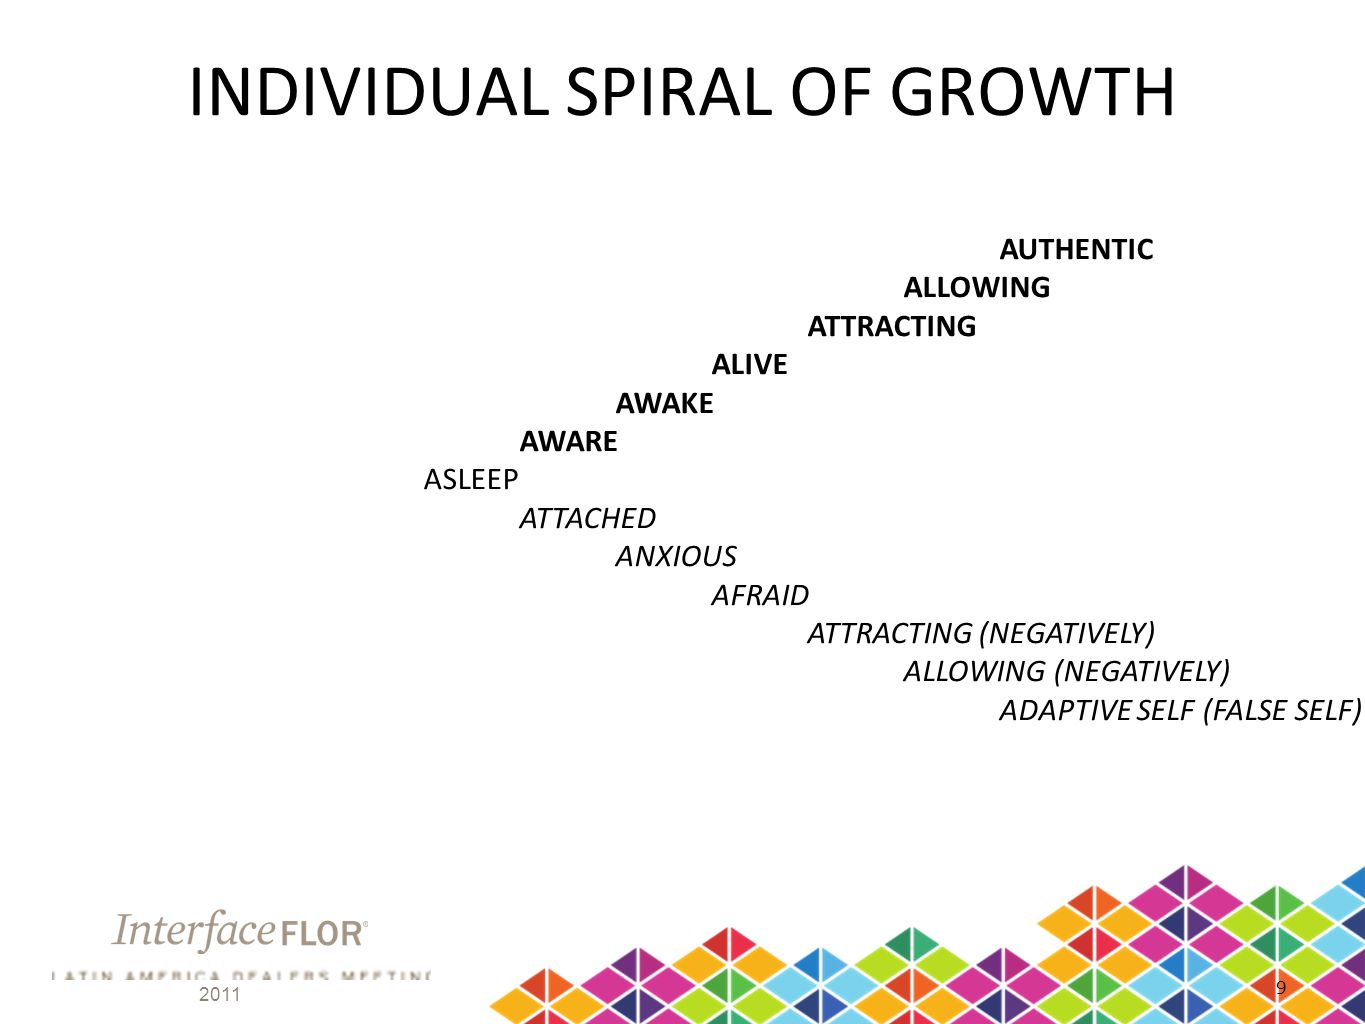 INDIVIDUAL SPIRAL OF GROWTH AUTHENTIC ALLOWING ATTRACTING ALIVE AWAKE AWARE ASLEEP ATTACHED ANXIOUS AFRAID ATTRACTING (NEGATIVELY) ALLOWING (NEGATIVELY) ADAPTIVE SELF (FALSE SELF)